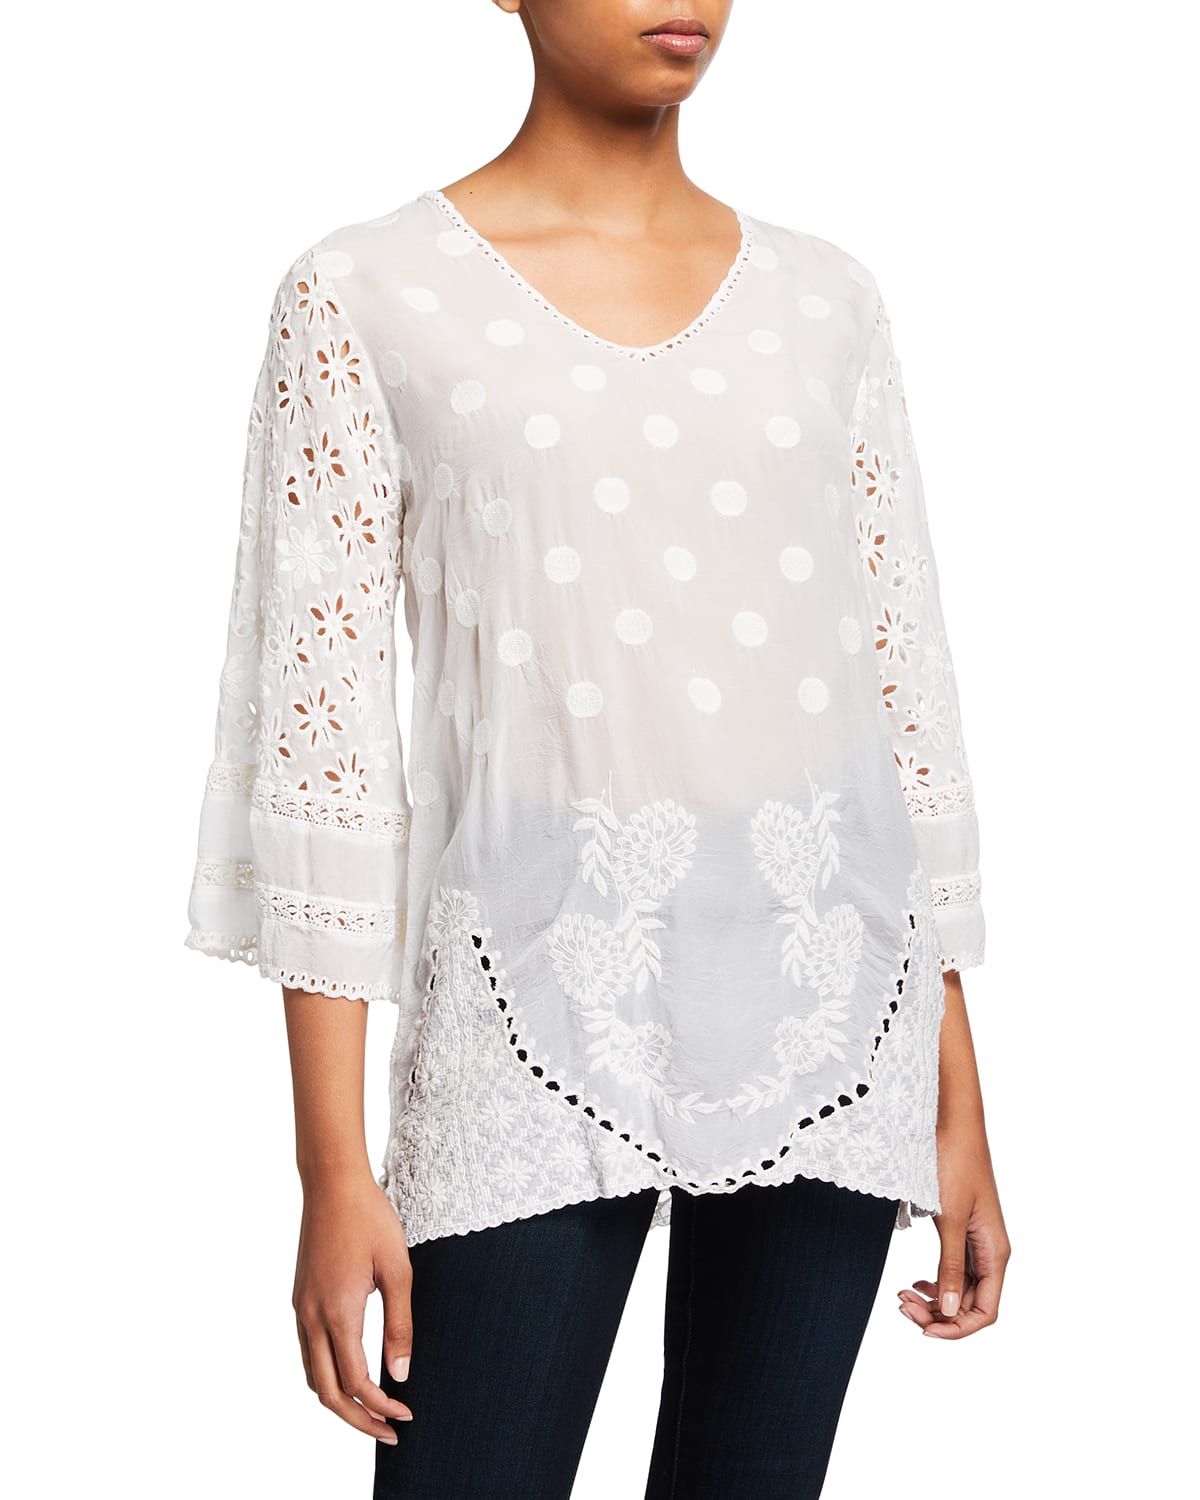 Marve Eyelet Embroidered Top